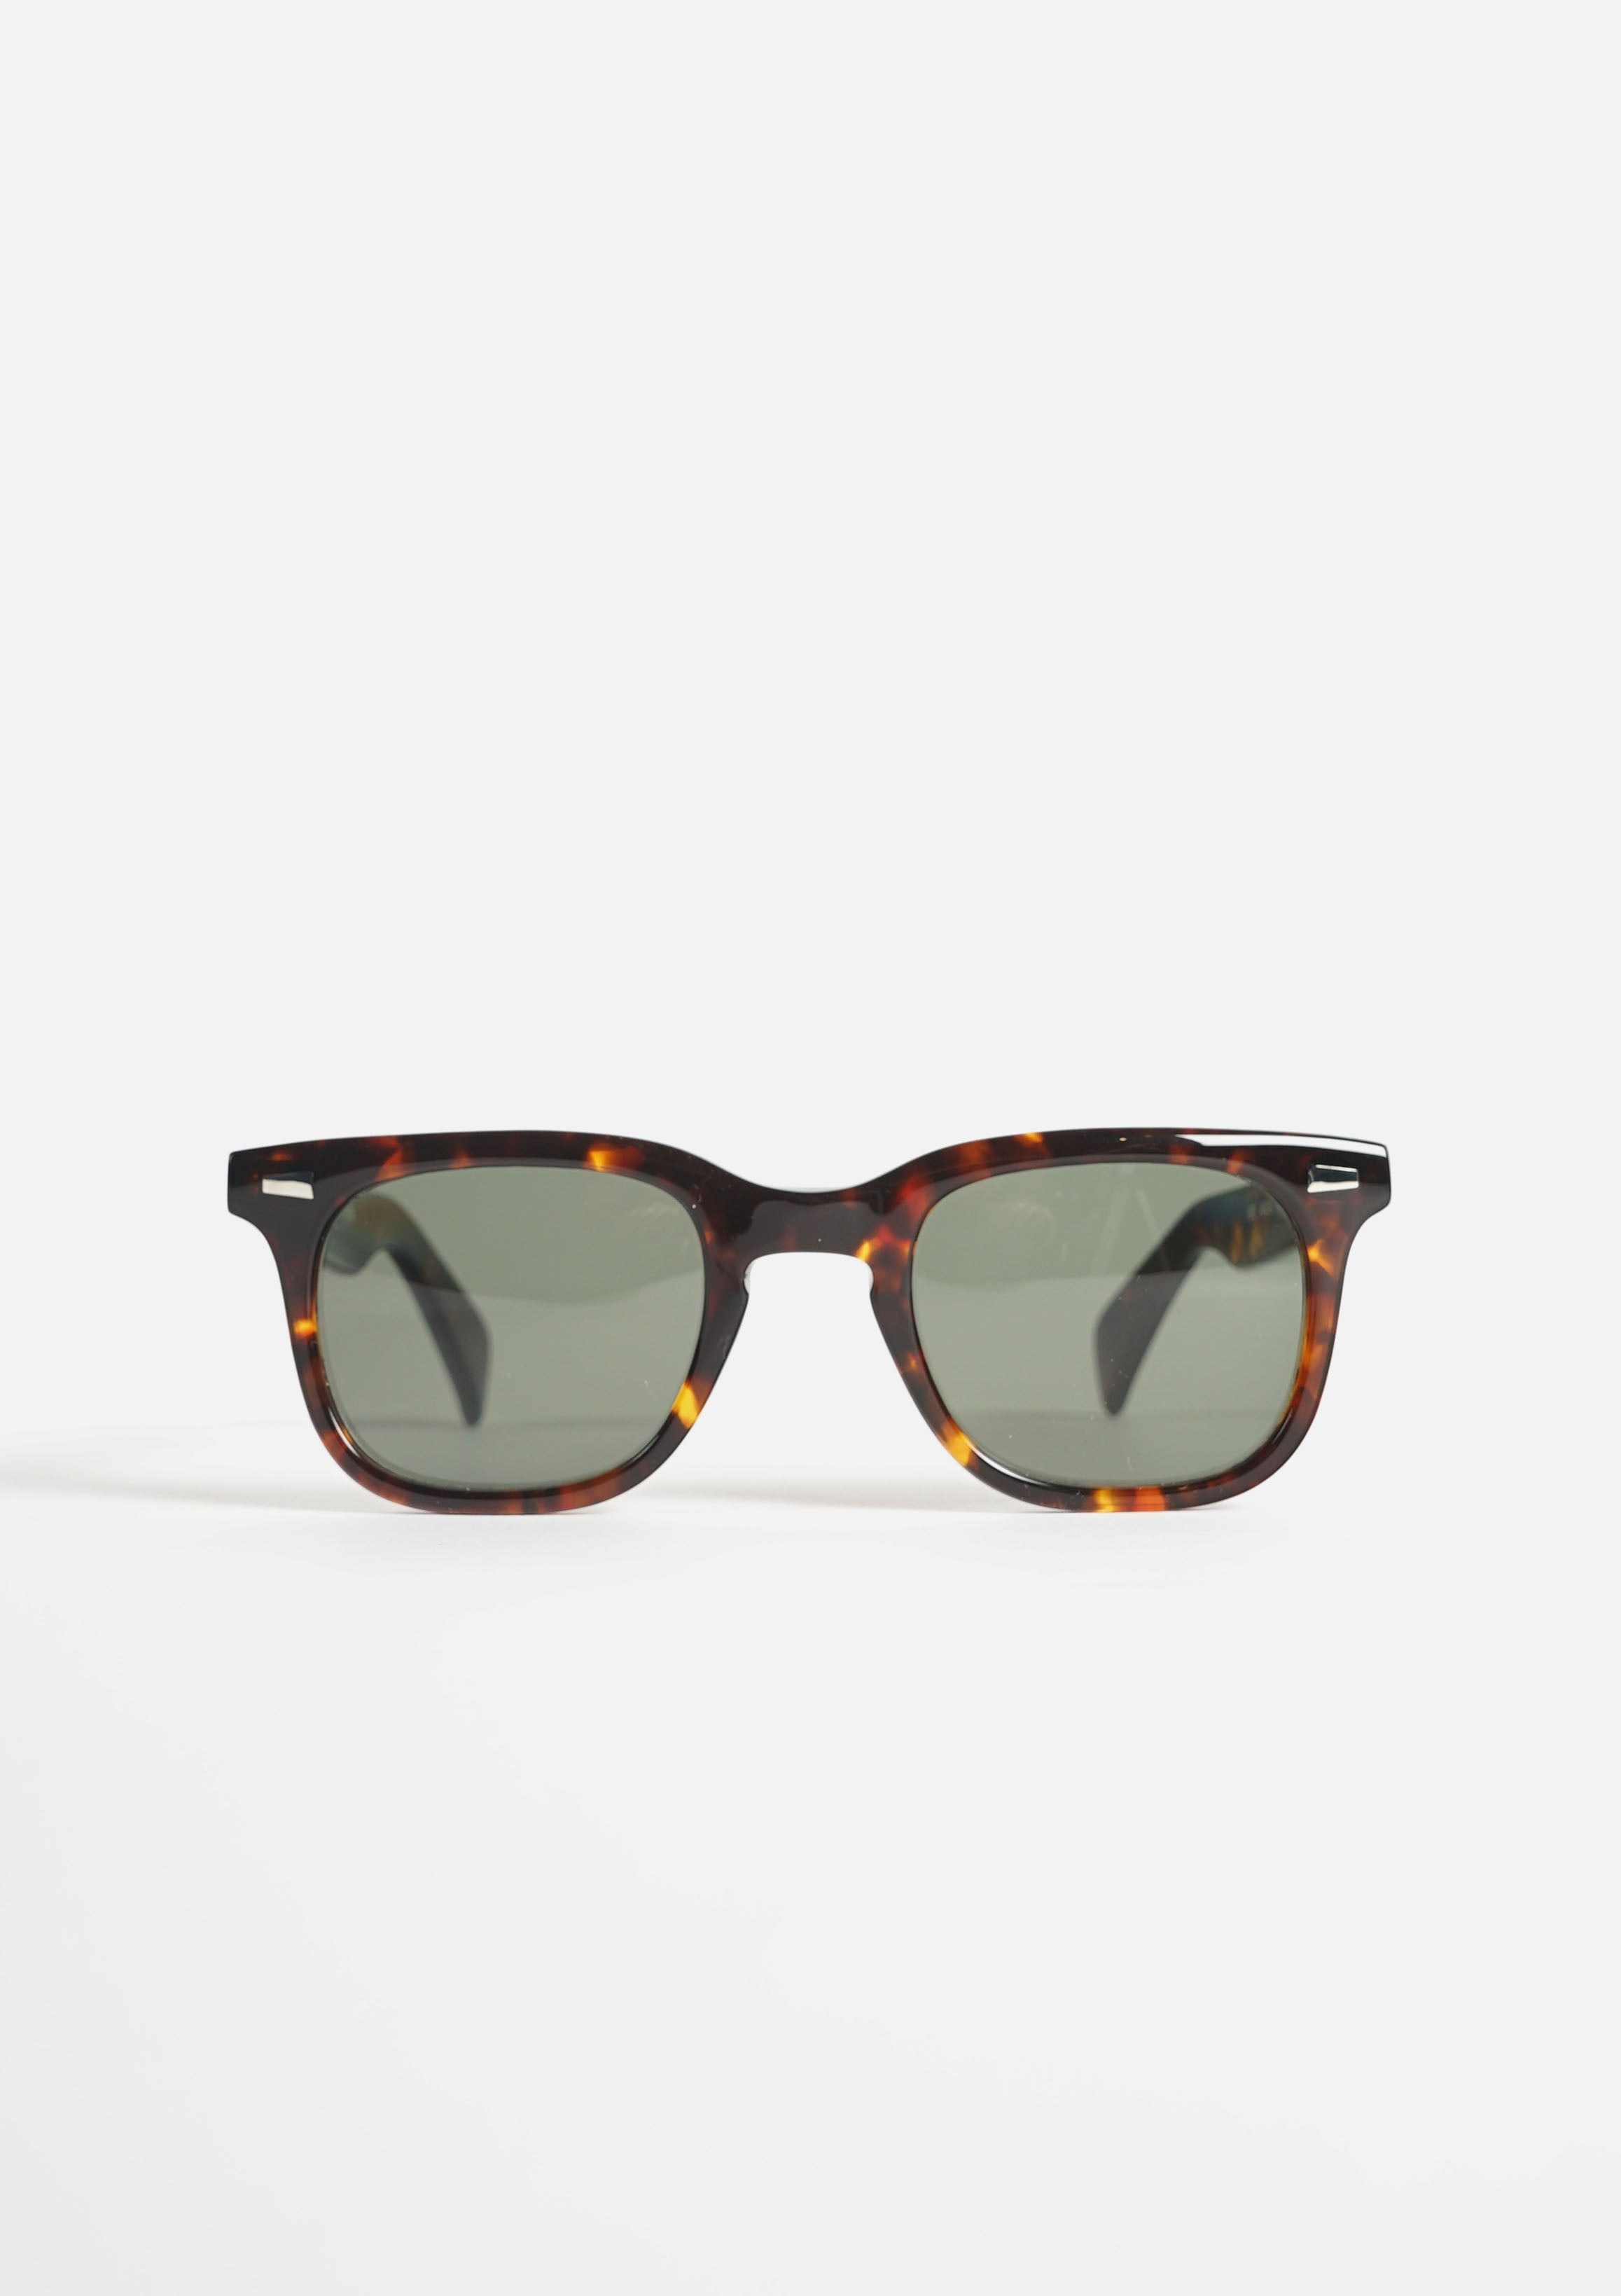 SKY Sunglasses Dark Brown Tortoise